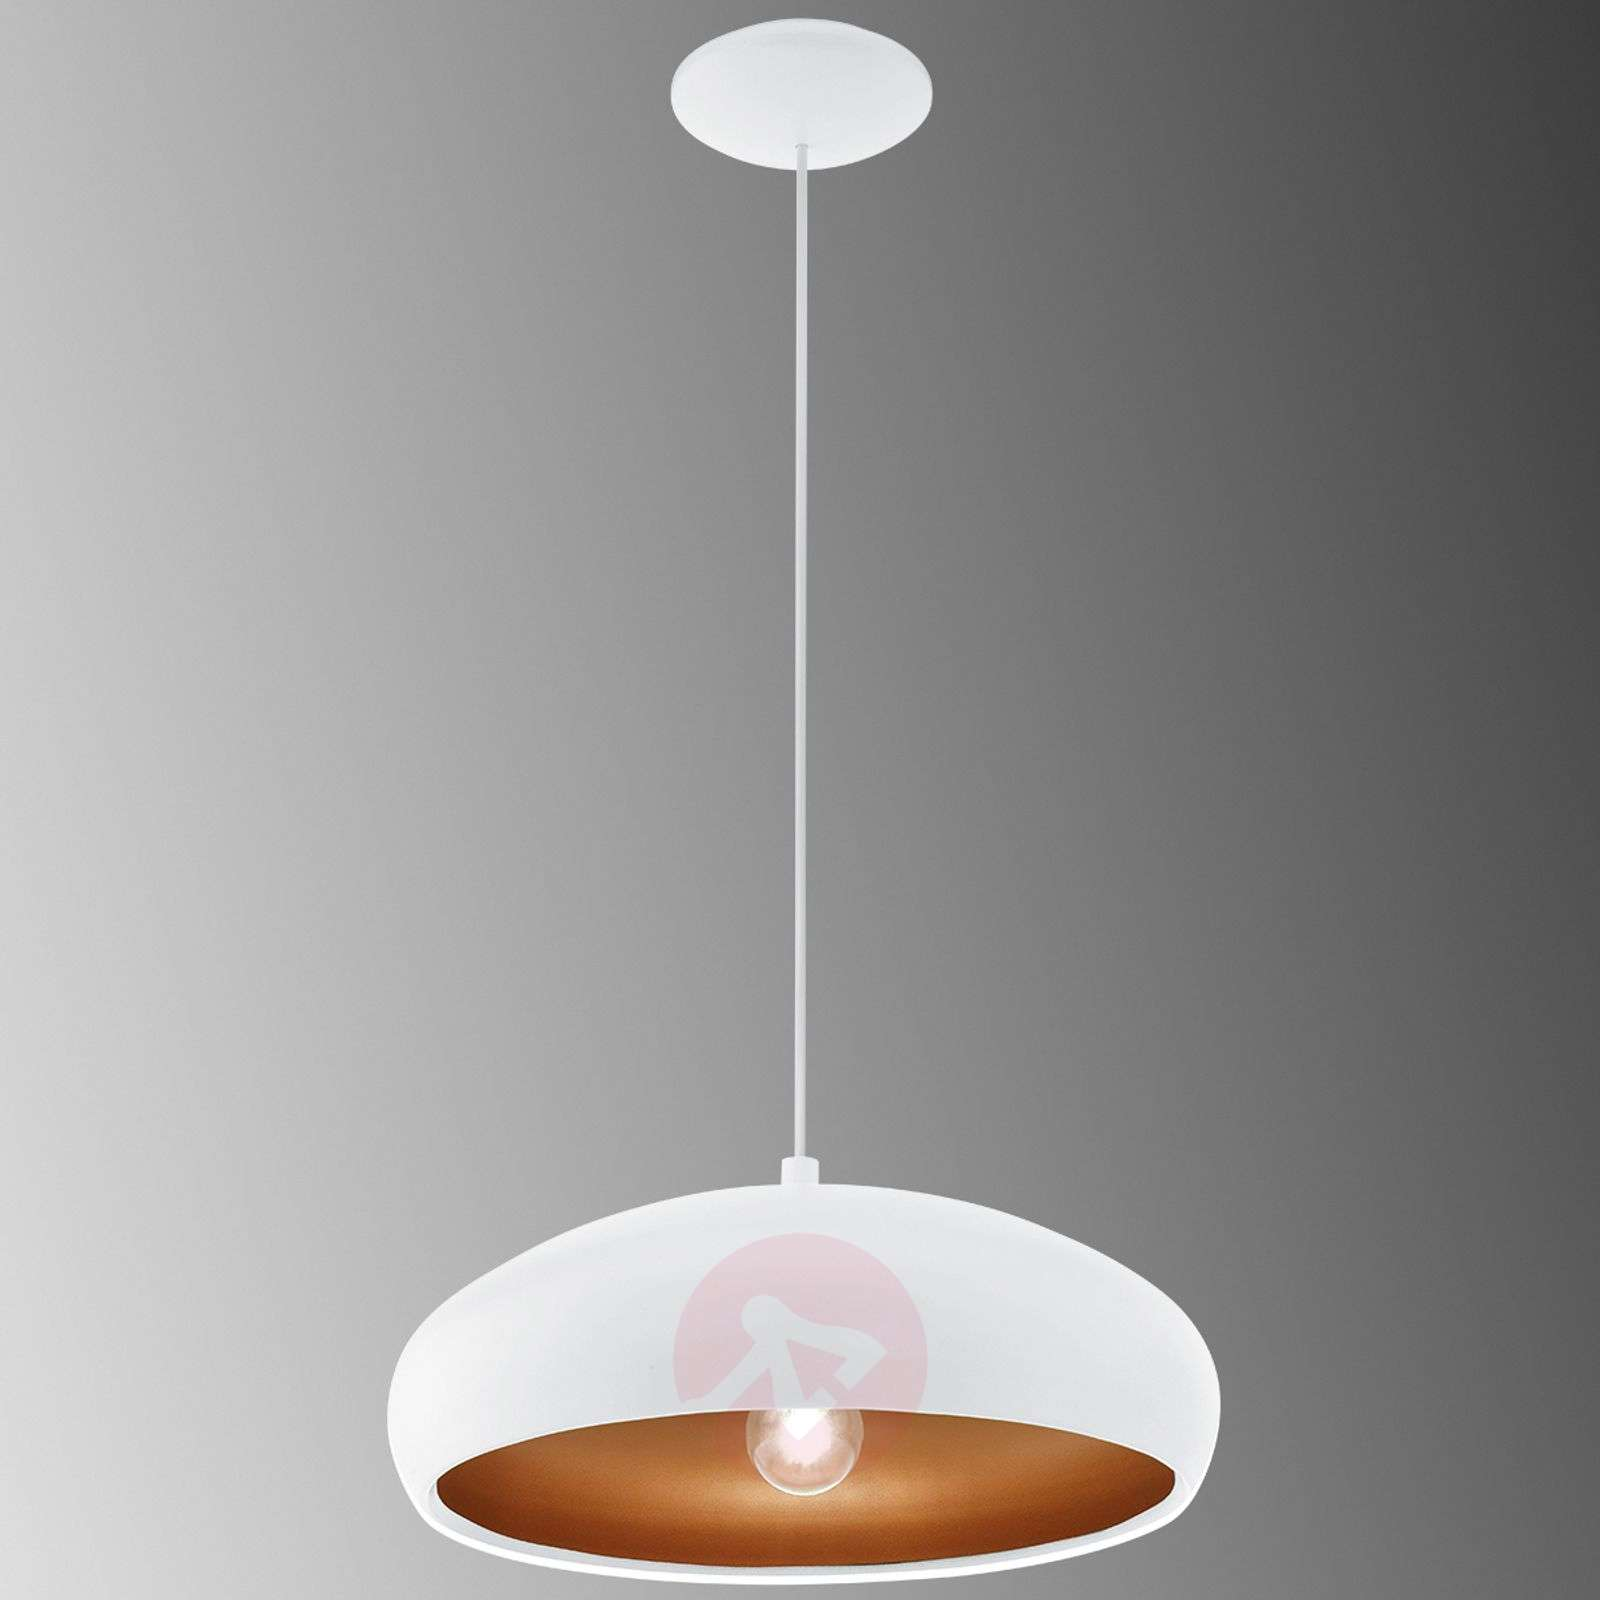 White pendant light Mogano Lightscouk